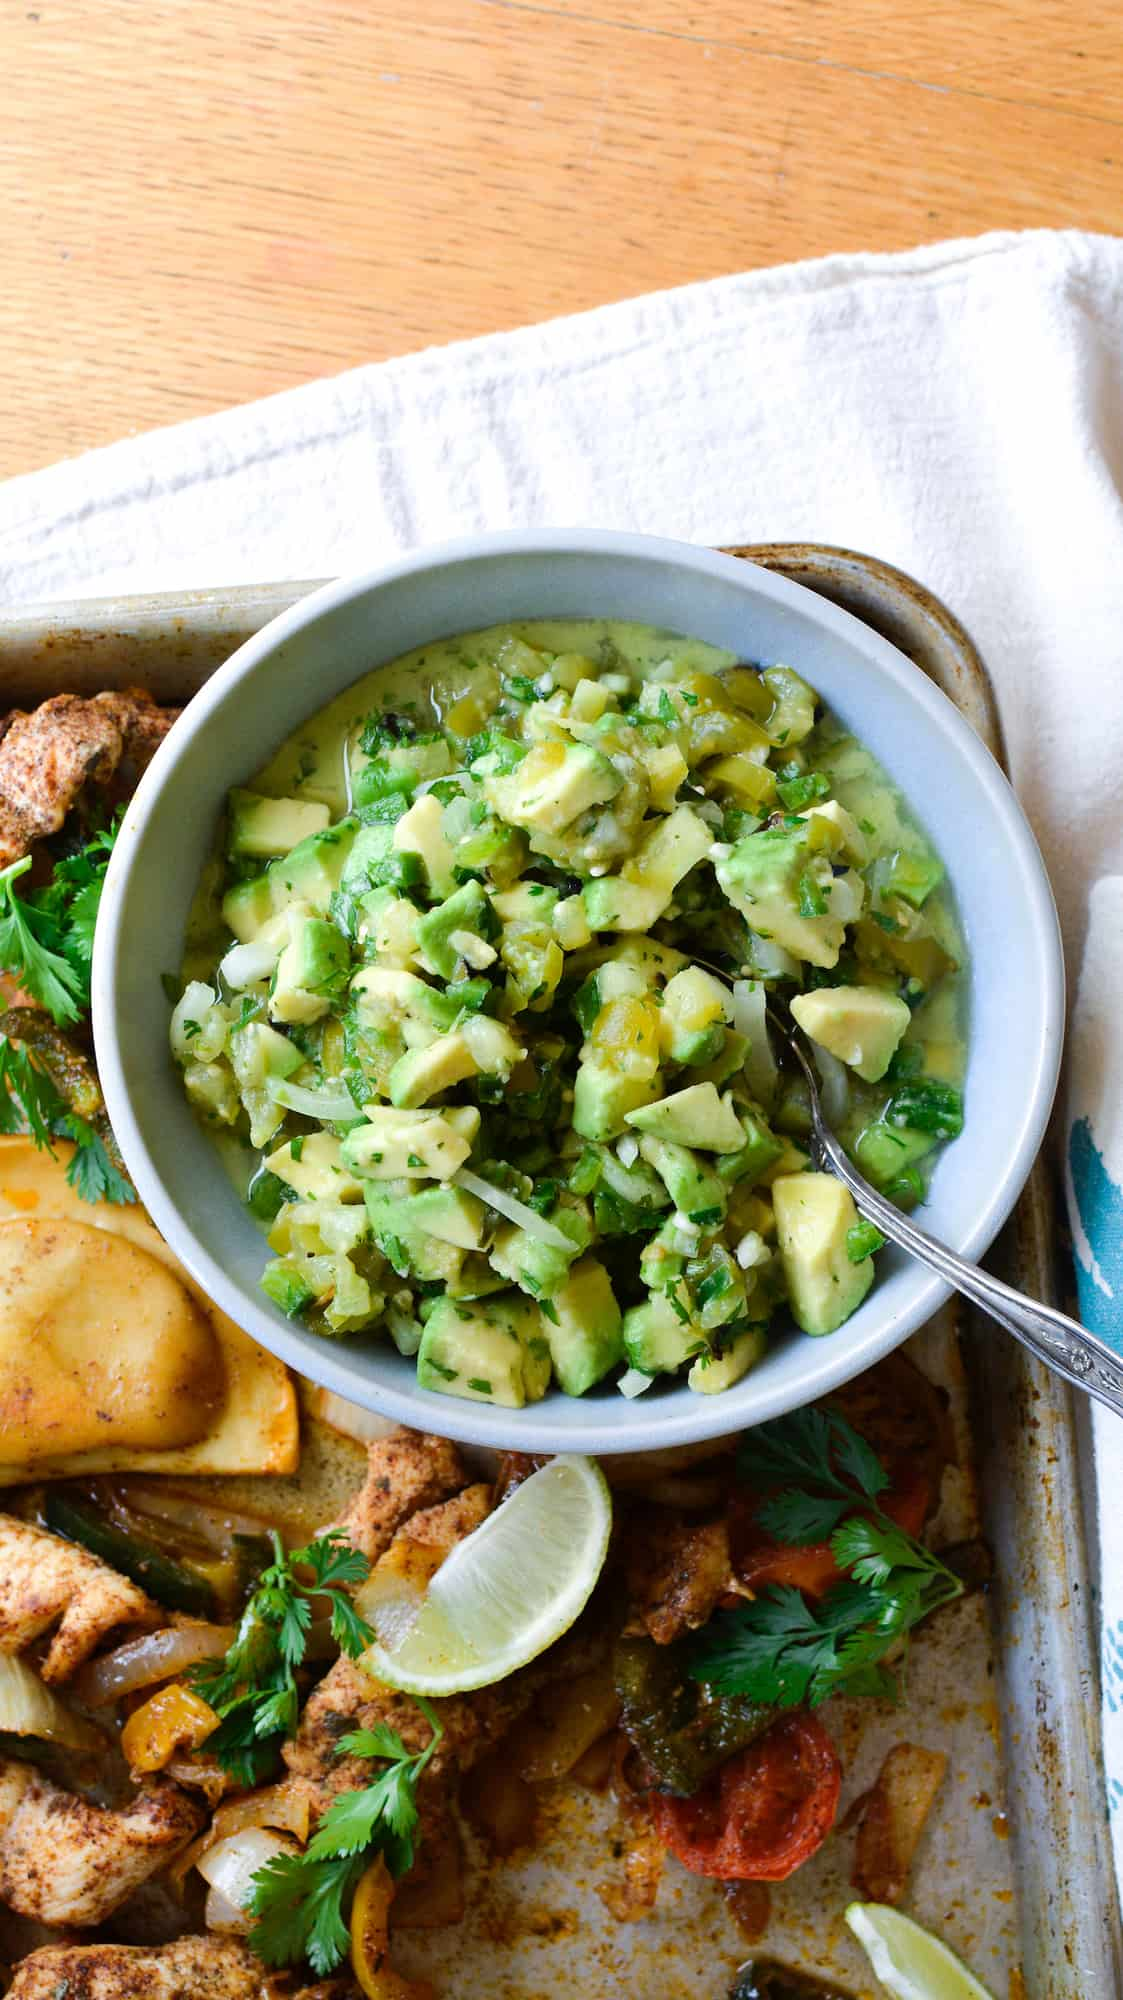 An overhead image of a bowl of avocado salsa with a spoon in the bowl sitting on a baking sheet on a wood table.